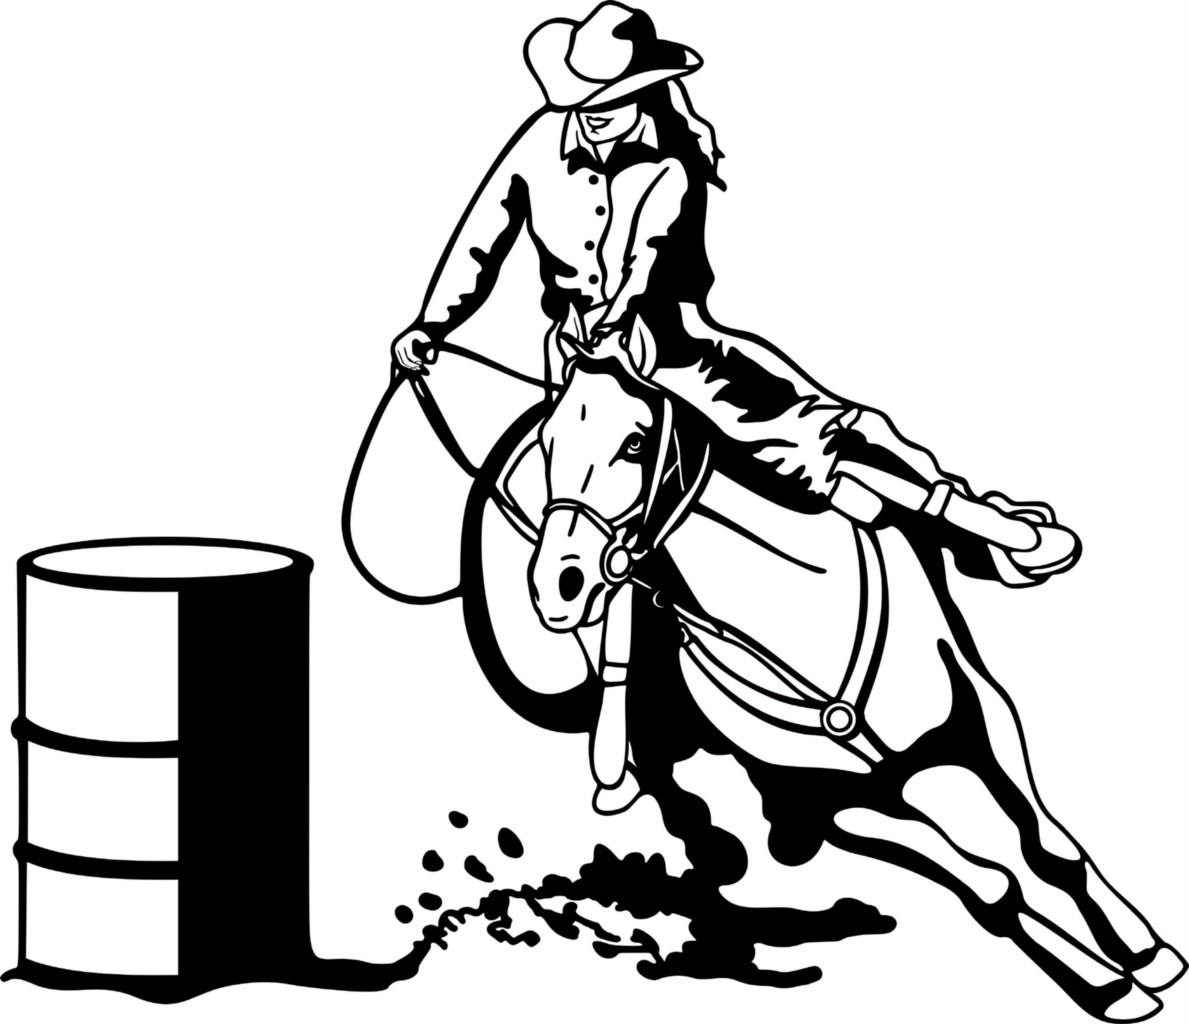 Images For Barrel Racing Pictures Clip A-Images For Barrel Racing Pictures Clip Art-16